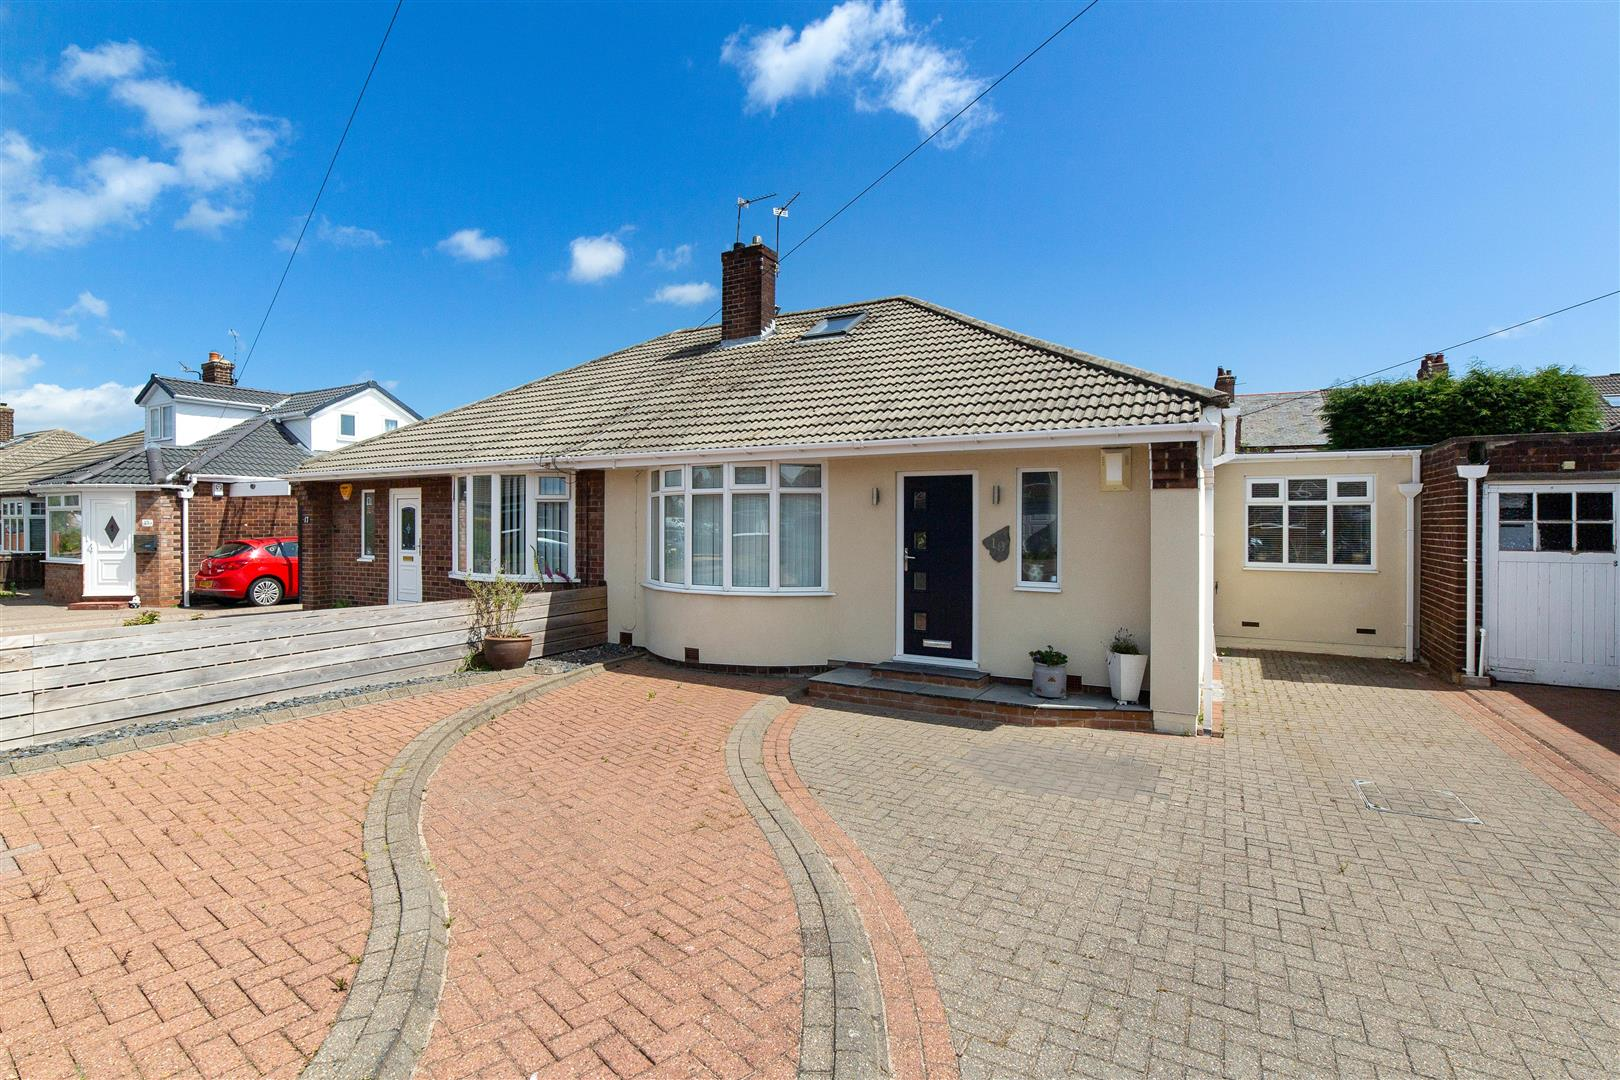 2 bed semi-detached bungalow for sale in Worcester Way, Newcastle Upon Tyne, NE13